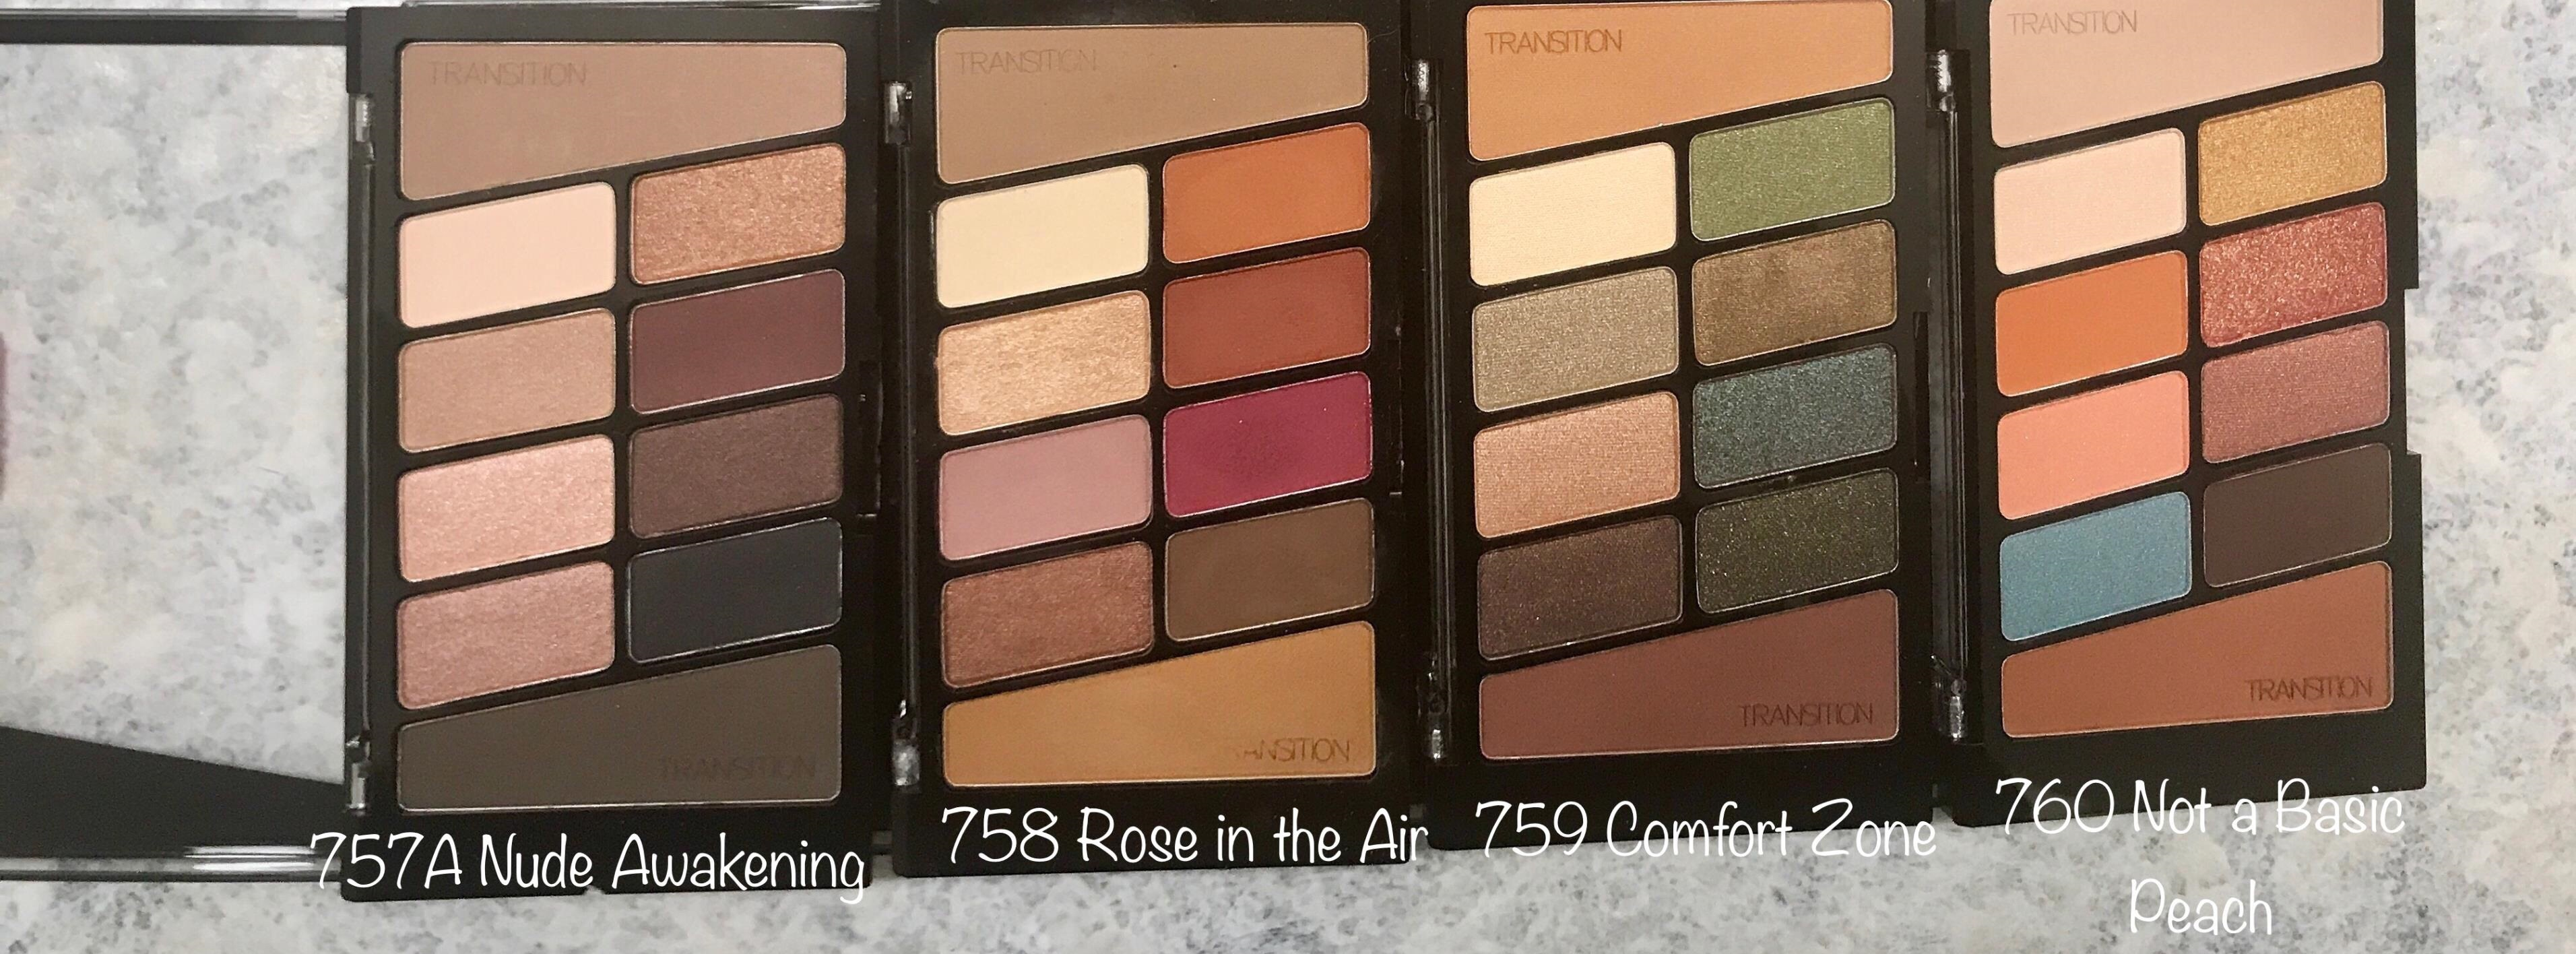 Wet n Wild New Color Icon 10 Pan Eyeshadow Palettes | Swatch and Review